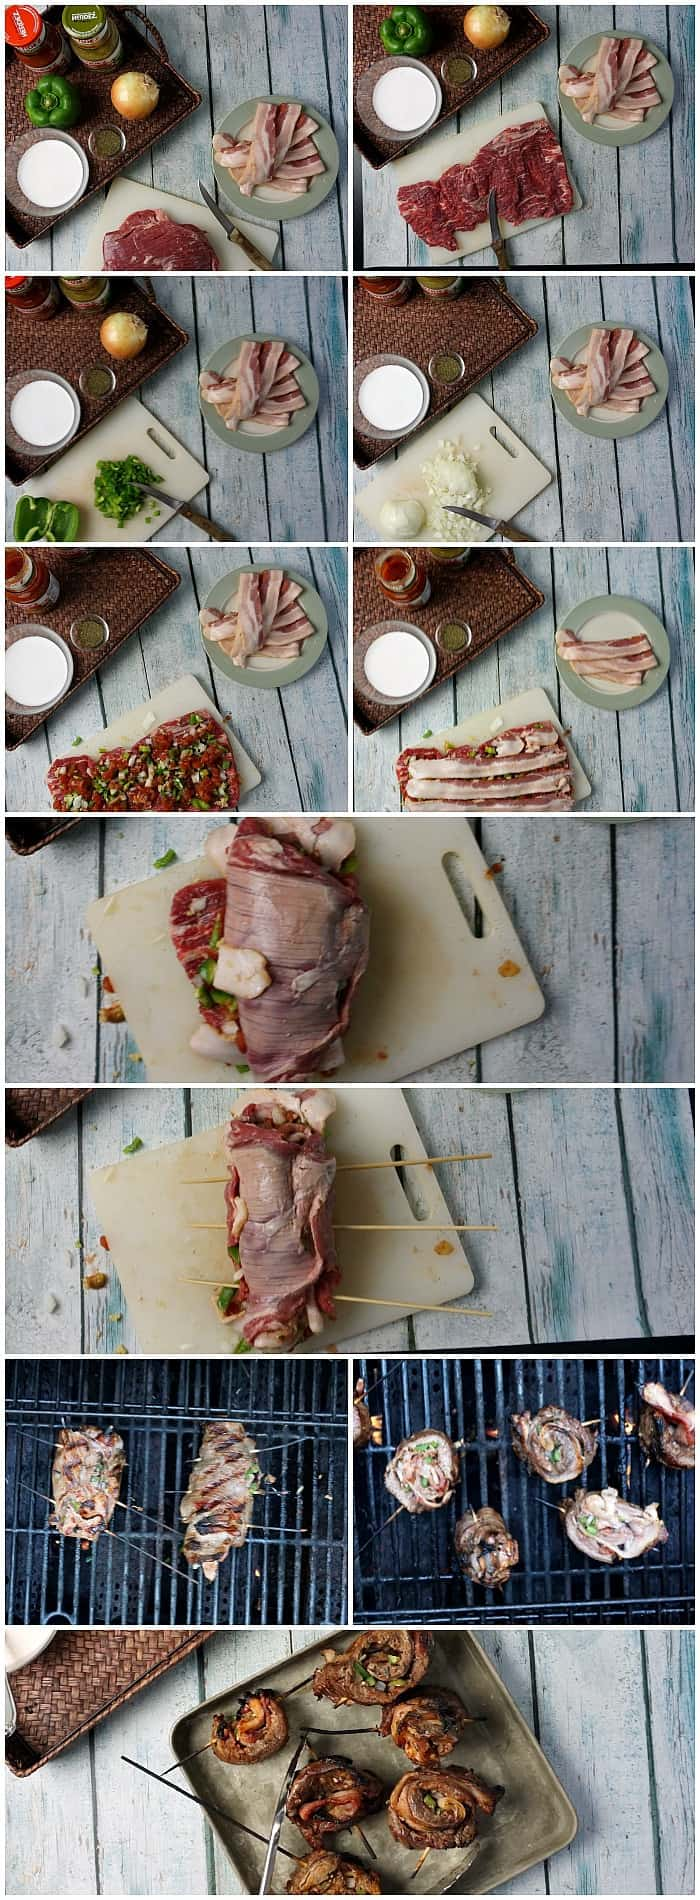 Tutorial for how to make a steak pinwheel recipe